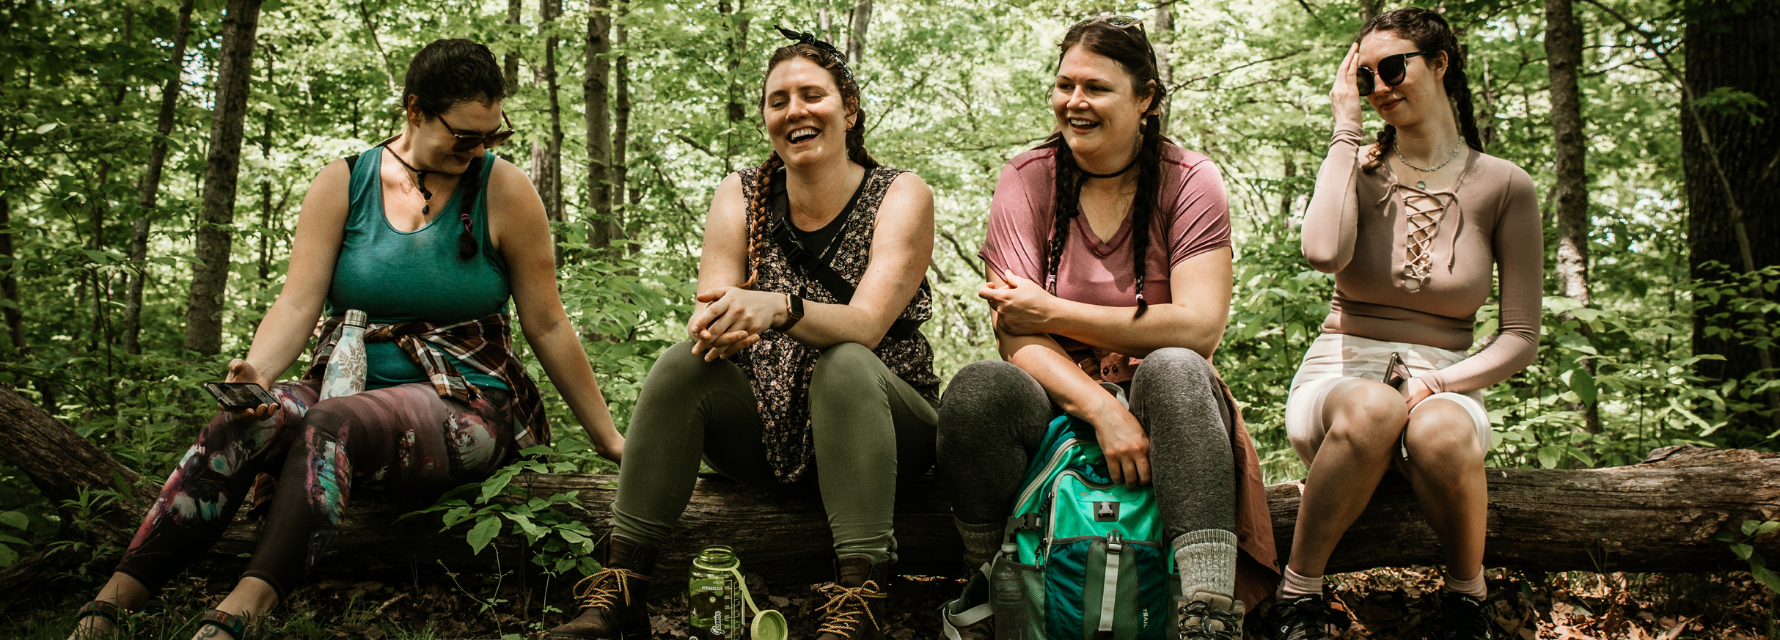 4 girls sitting on a log in the woods